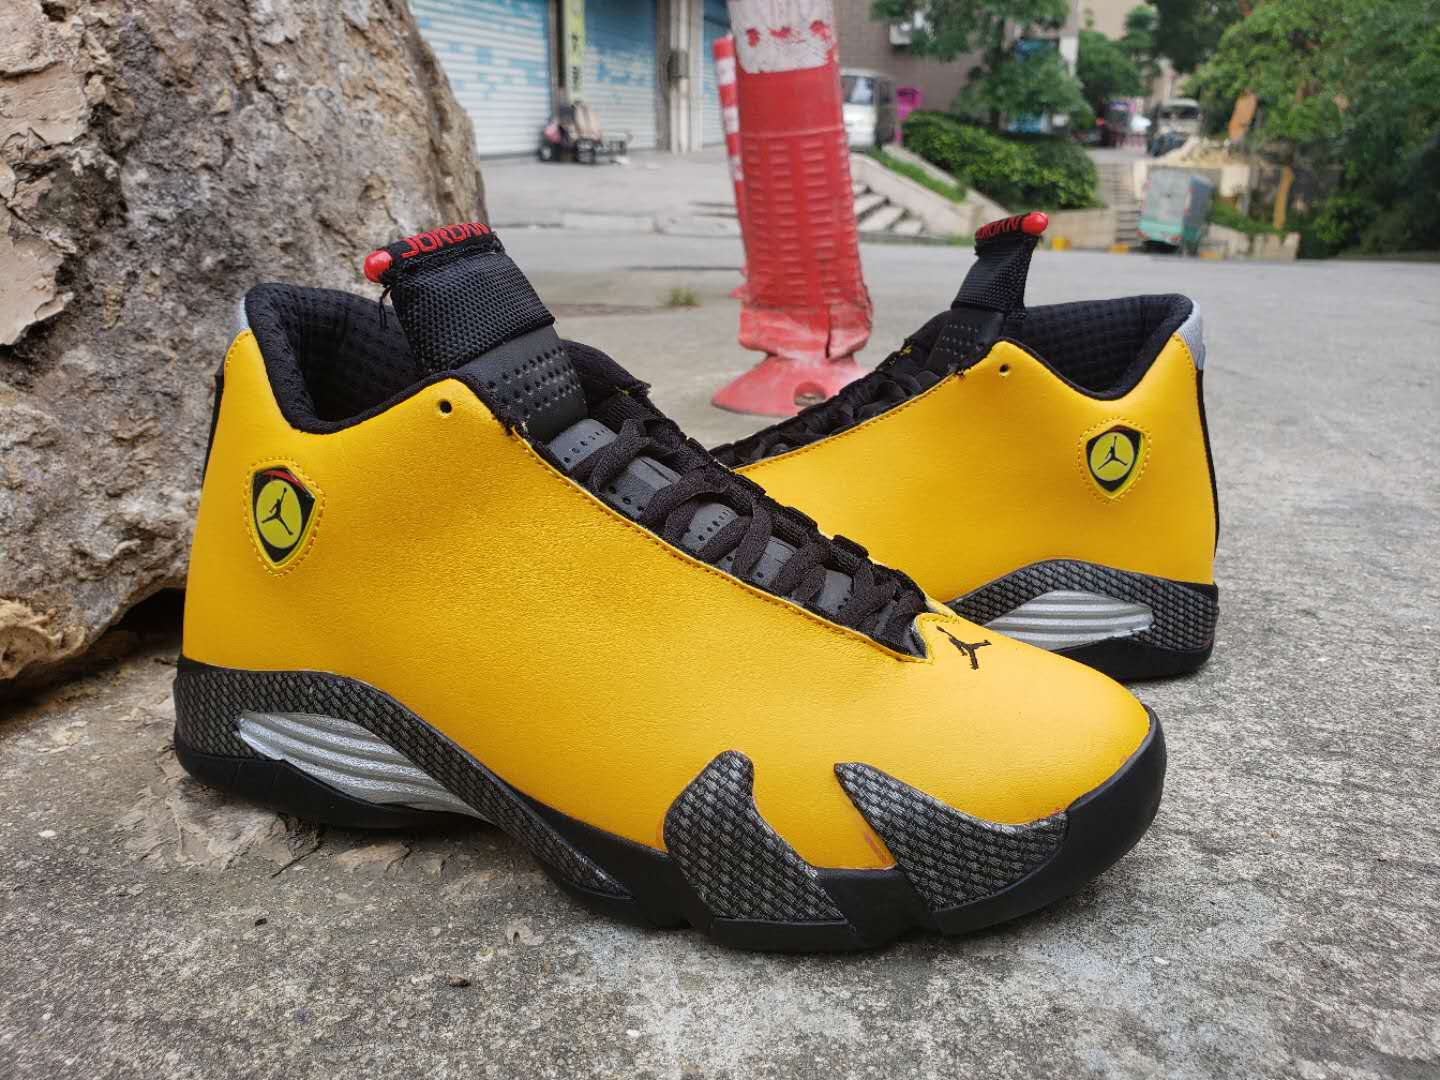 Air Jordan 14 Retro Yellow Ferrari Black Shoes